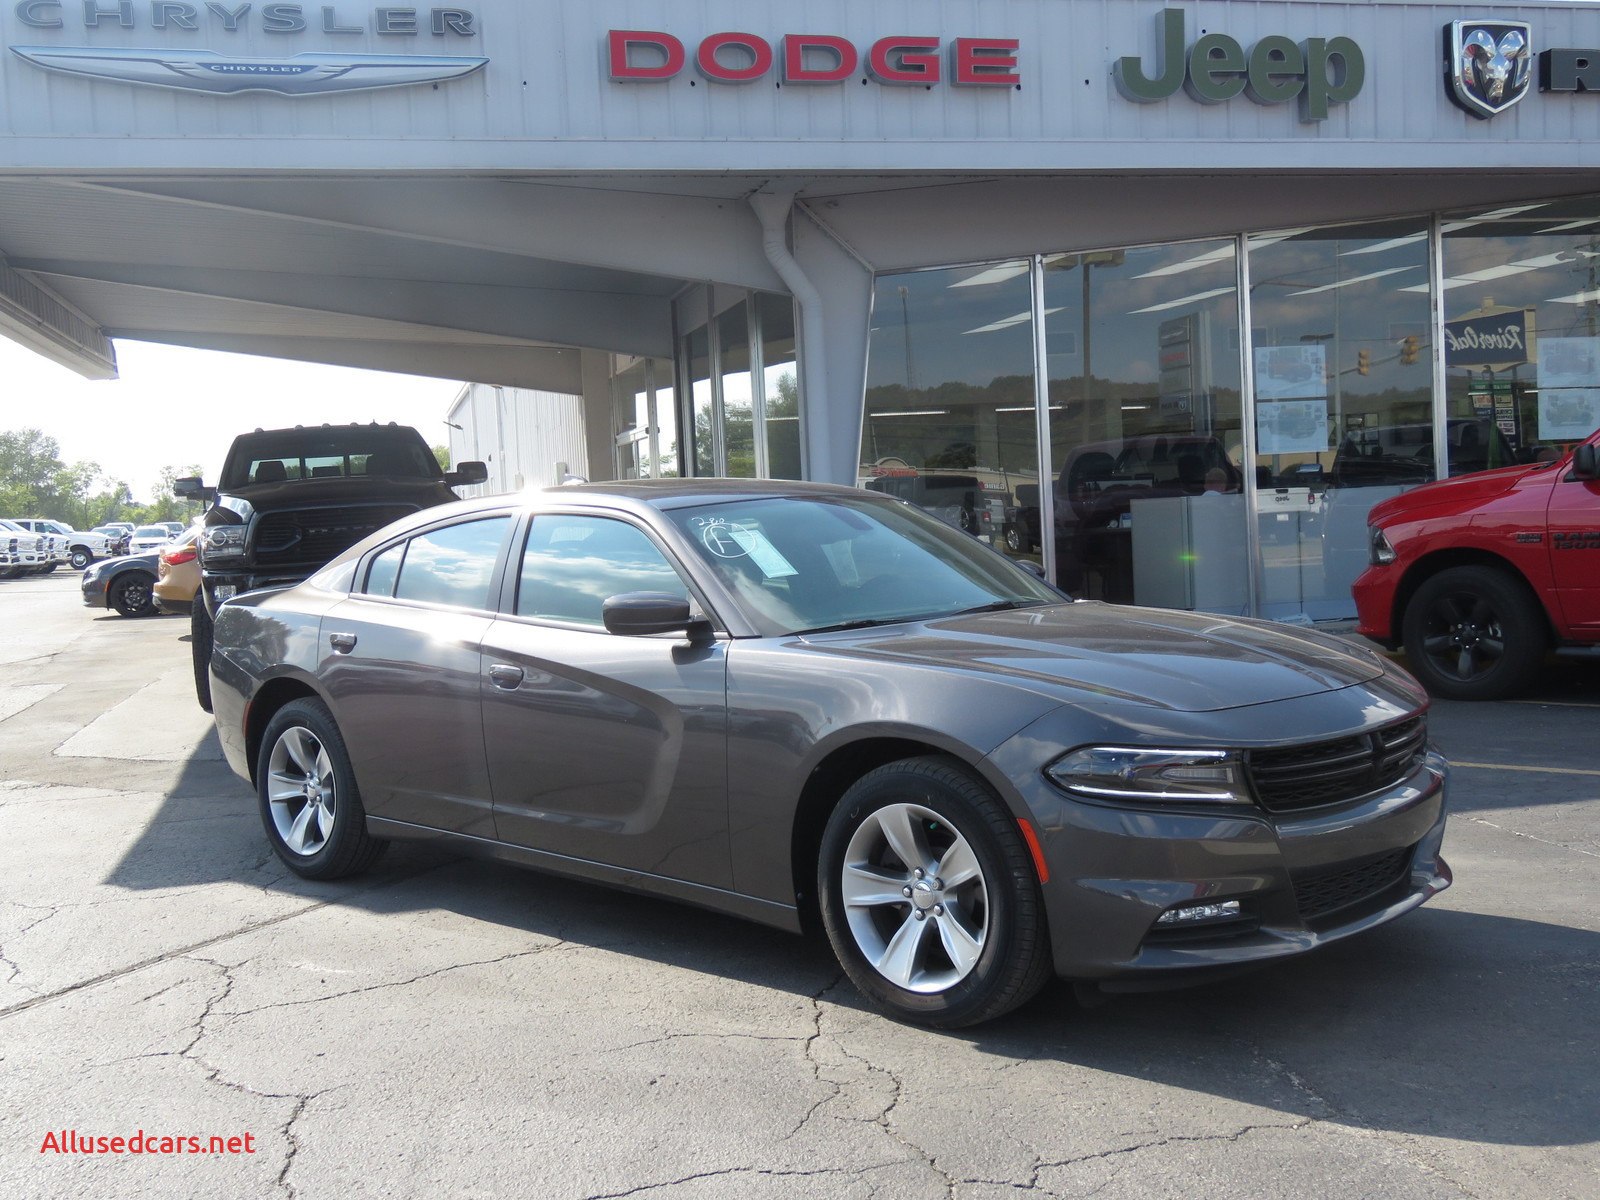 2018 Dodge Charger Sxt Unique New 2018 Dodge Charger Sxt Plus Rwd